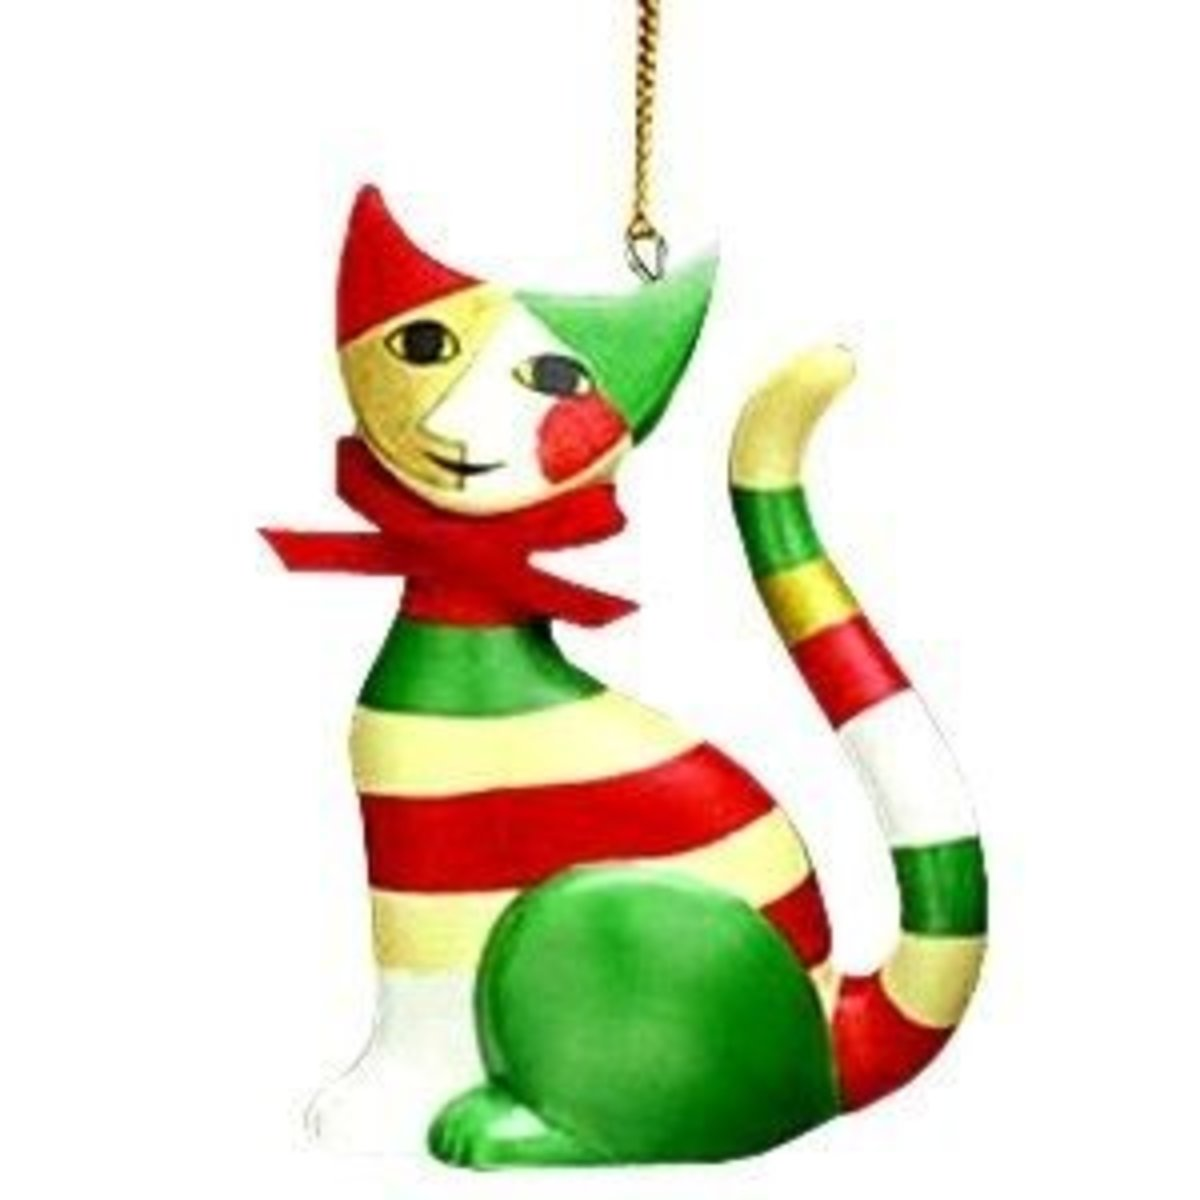 The Goebel Gianni Cat Christmas Ornament For Cat Lovers Is Hand Painted By Artist Rosine Wachtmesiter.  Image Credit: Amazon